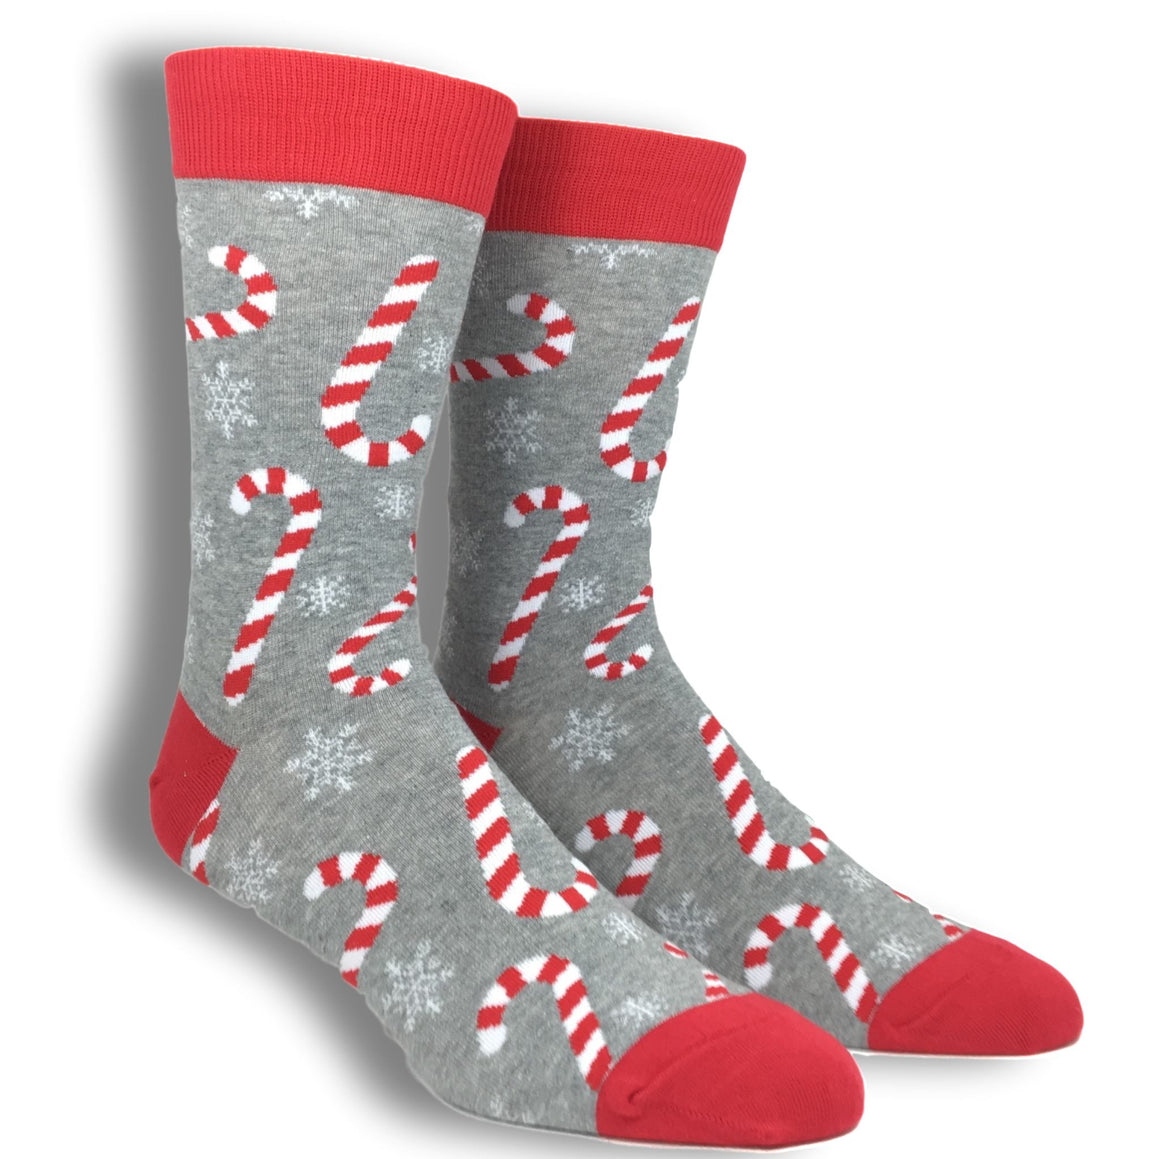 Candy Cane Socks by Good Luck Sock - The Sock Spot